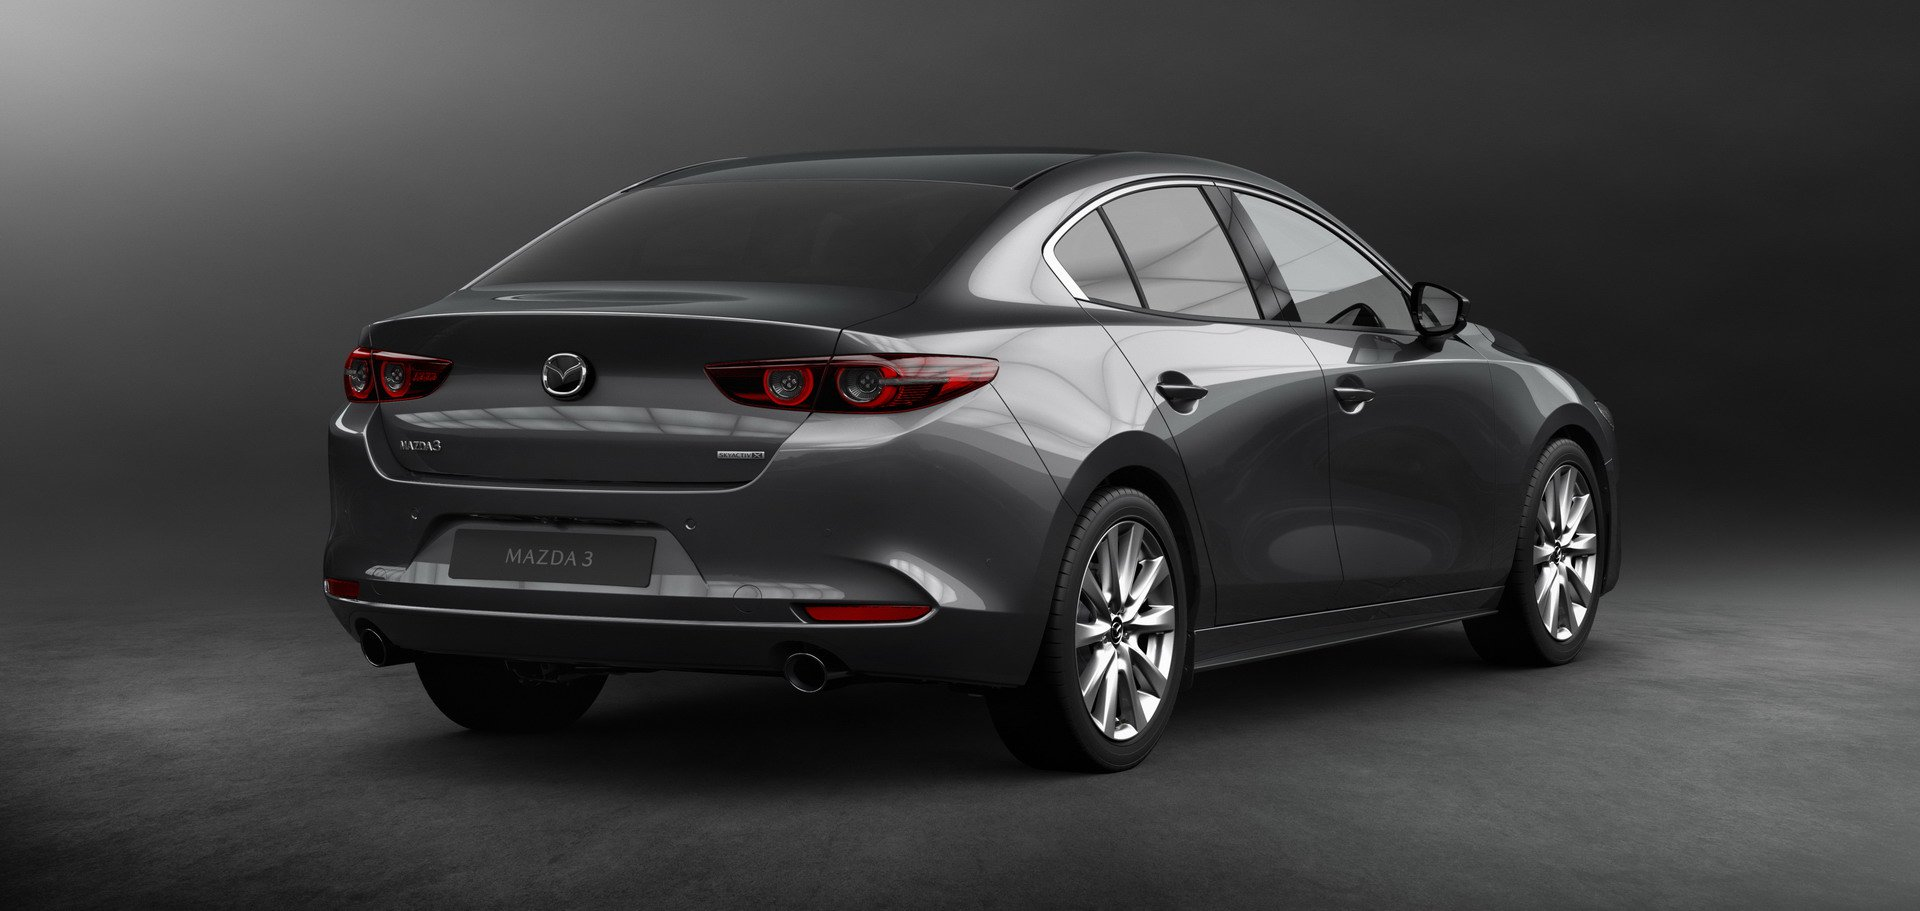 Mazda3 Hatchback and Mazda3 sedan 2019 (23)